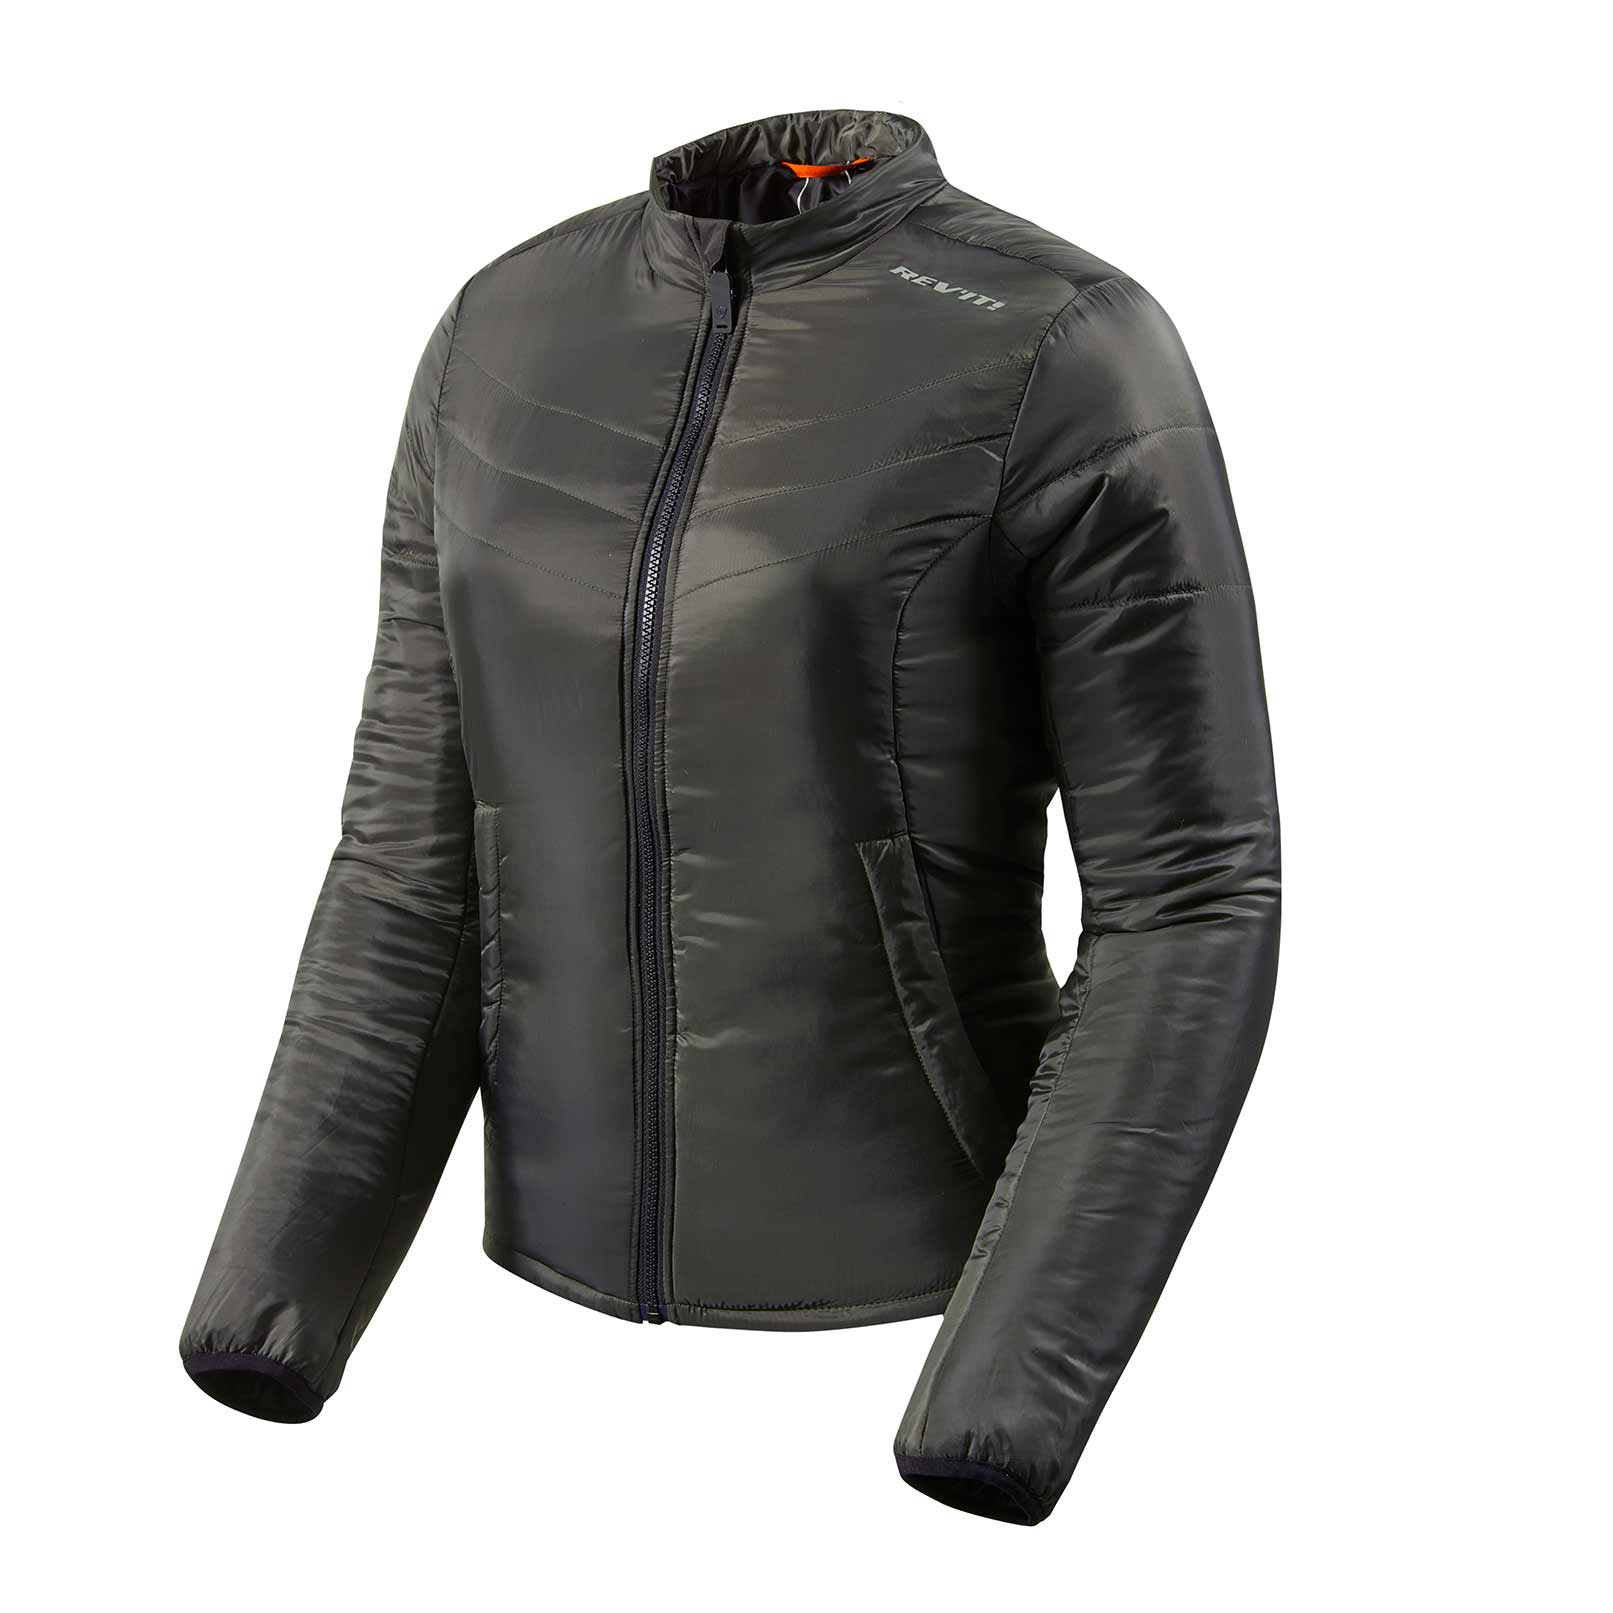 REV'IT! Core Ladies Mid Layer Jacket - 421 Moto Gear